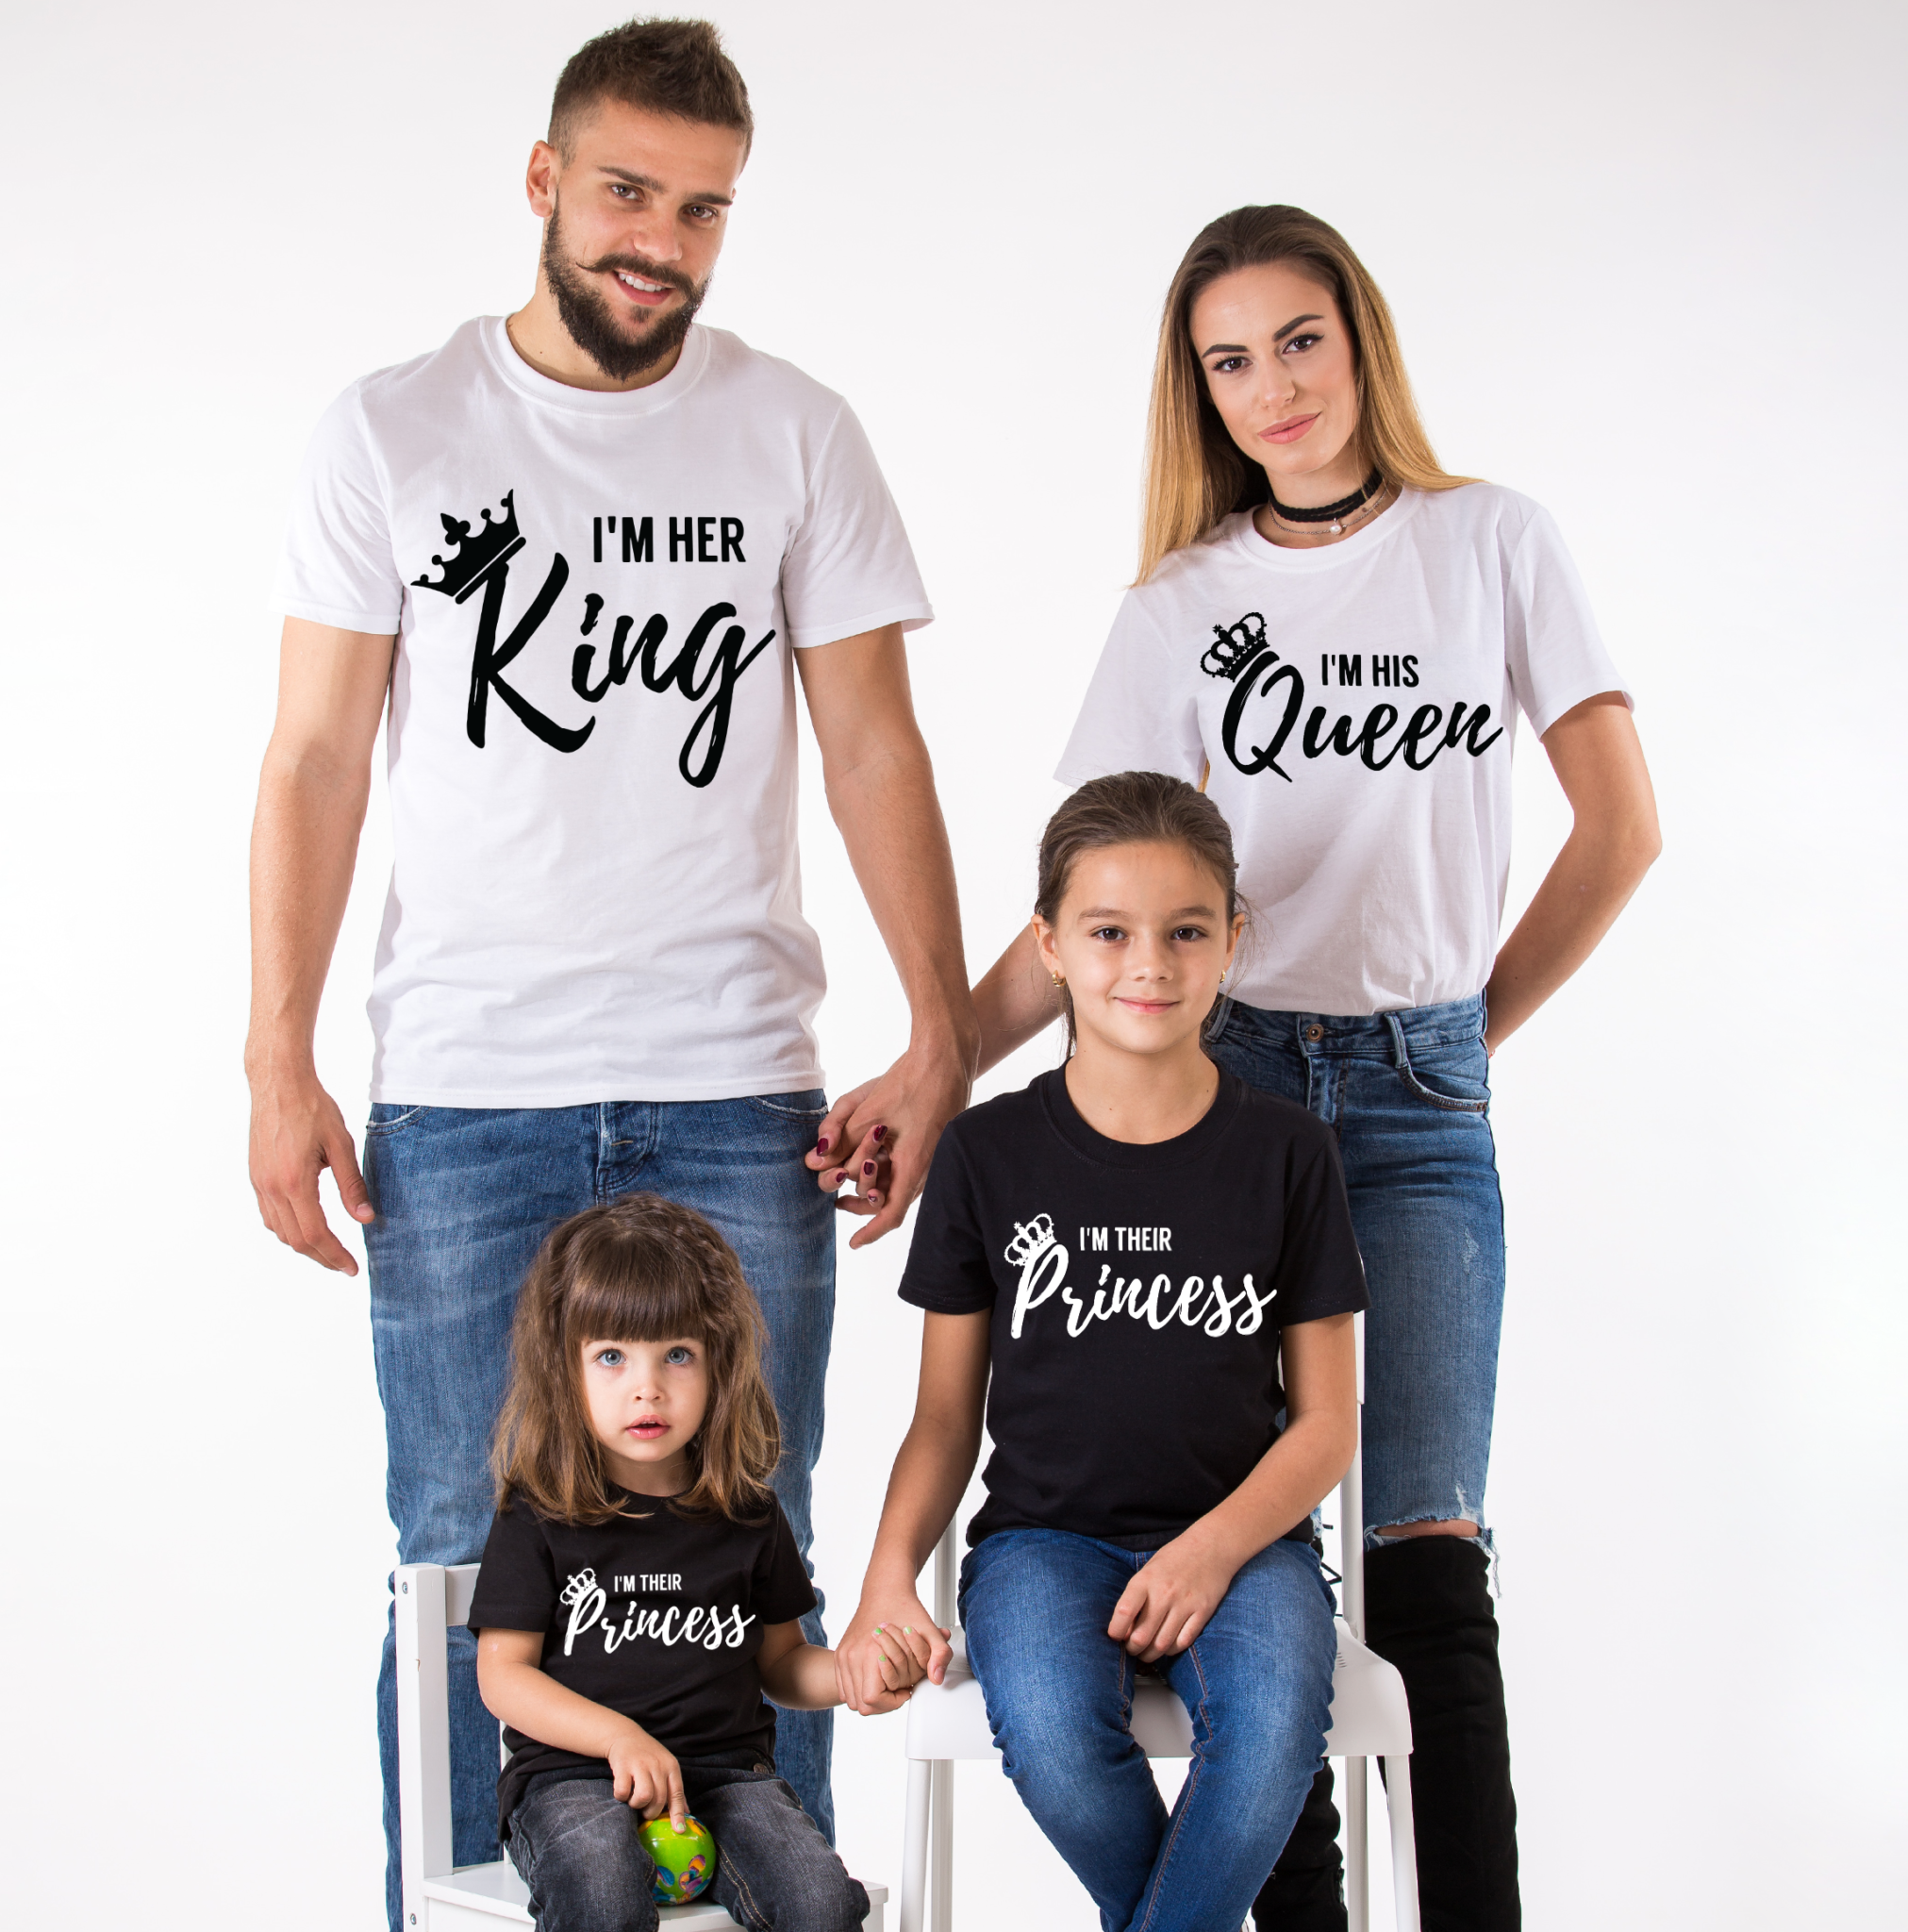 King Queen Family, Her King, His Queen, Their Prince ...